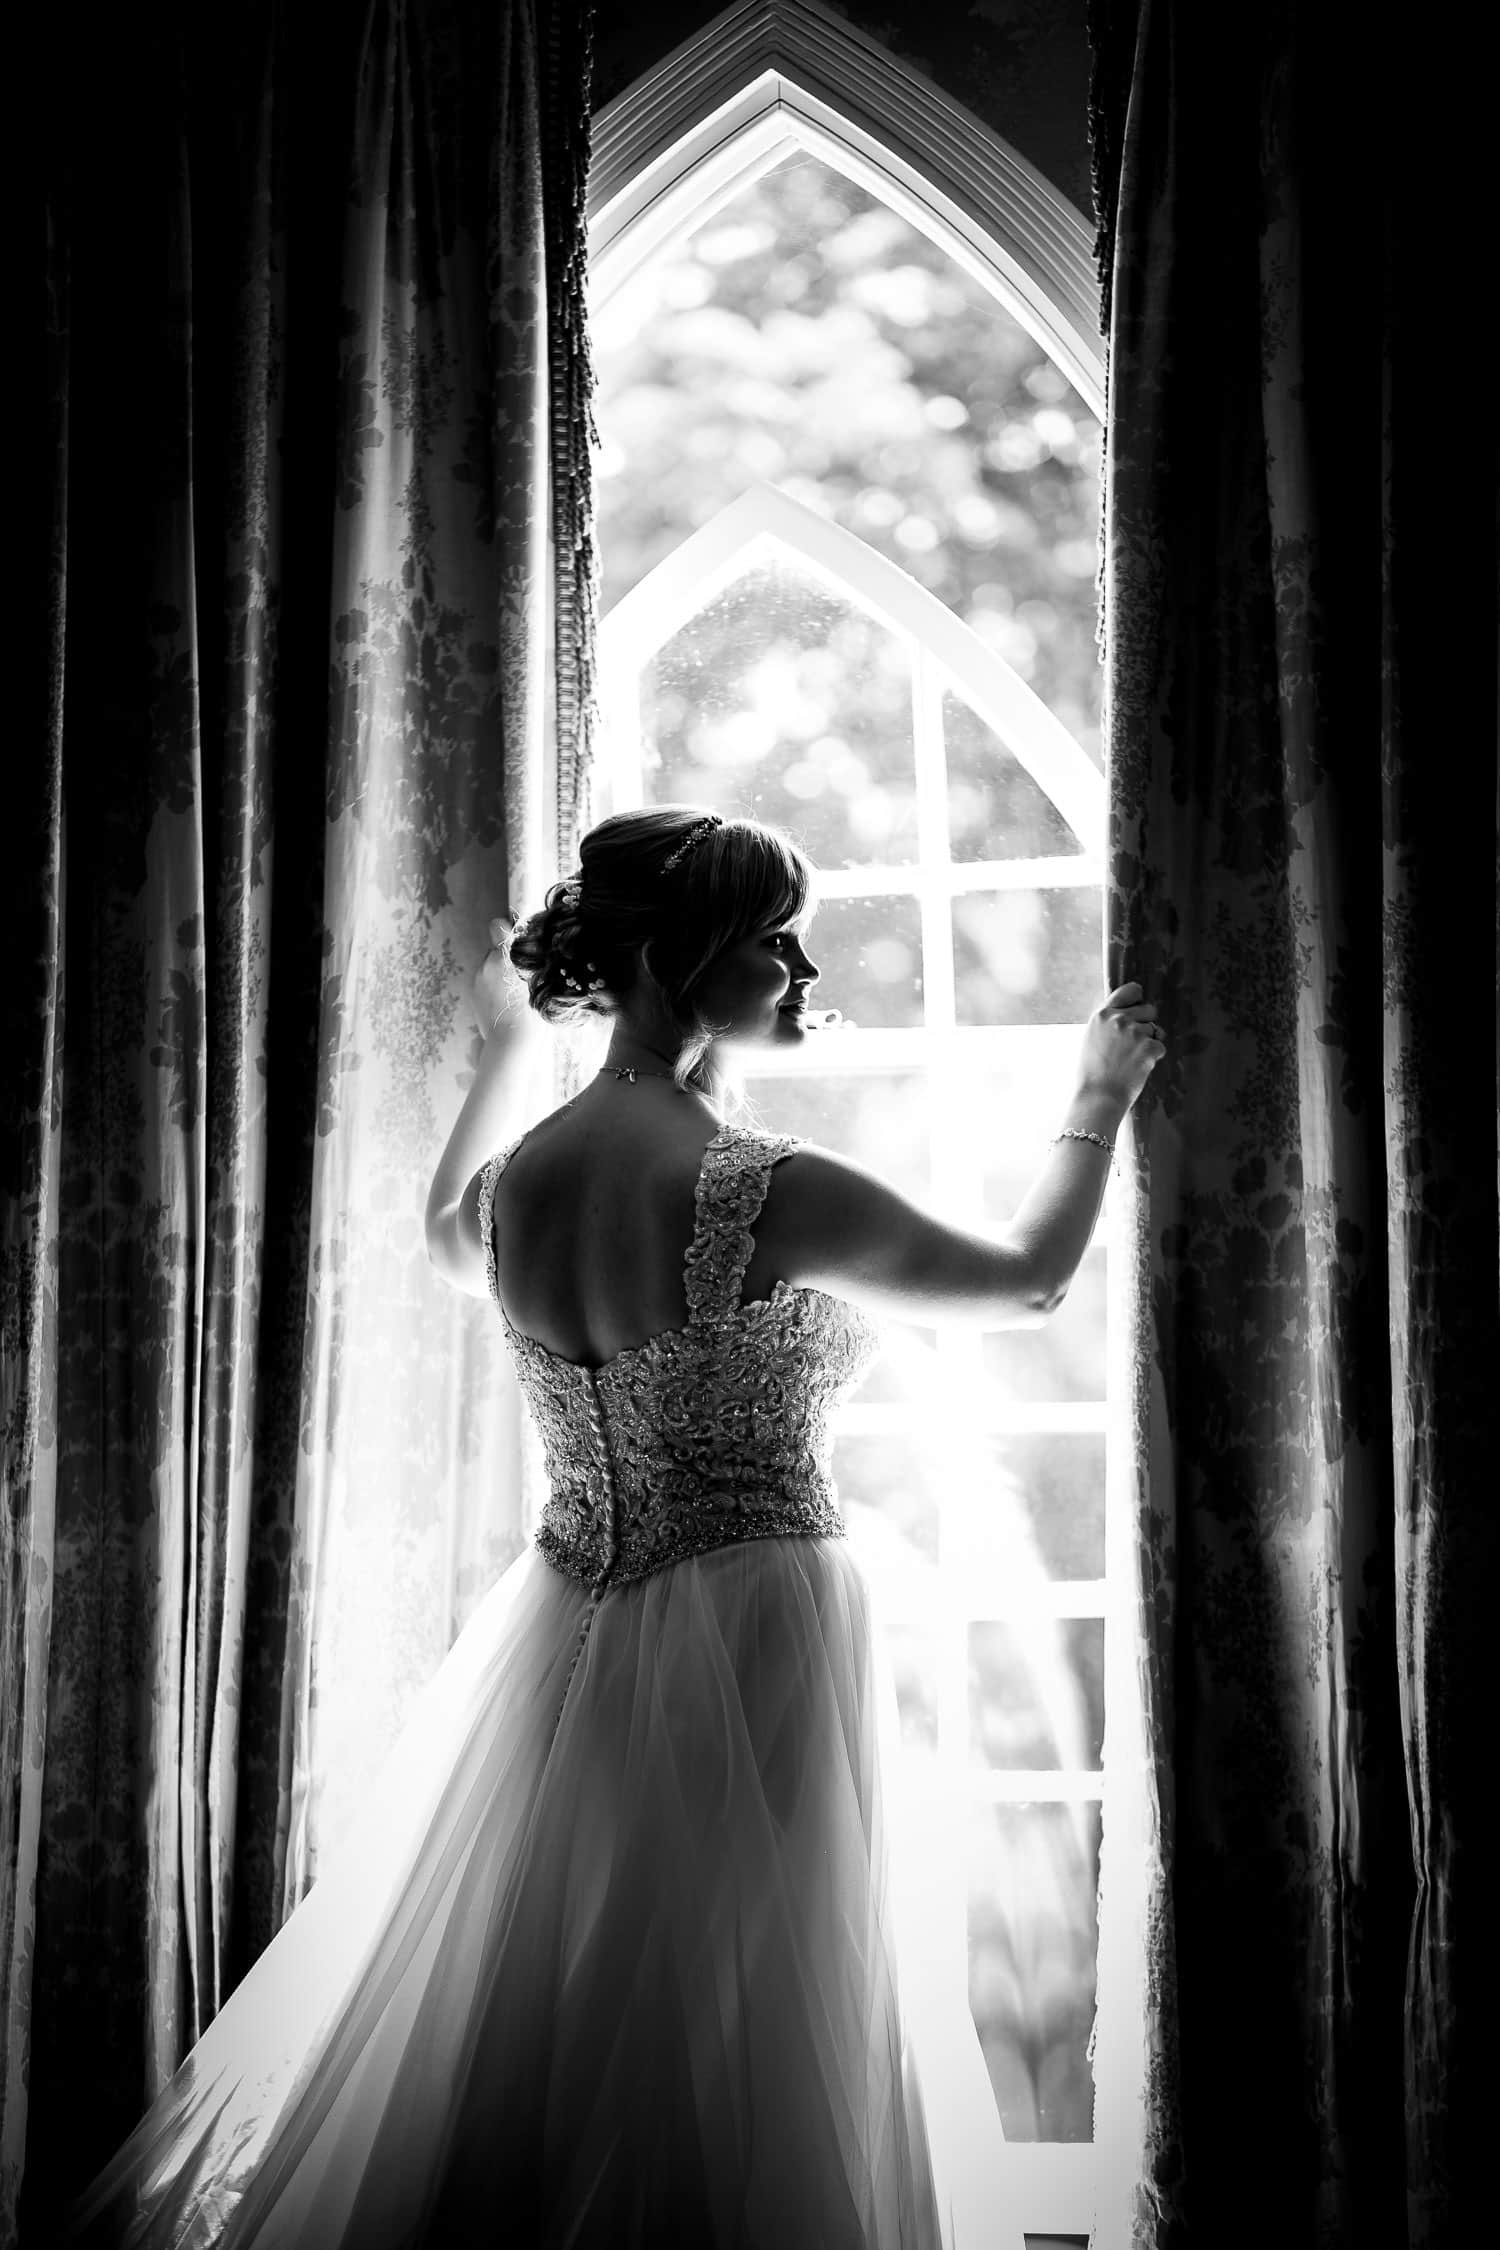 Chapter One Photography captures beautiful silhouette of bride in the window